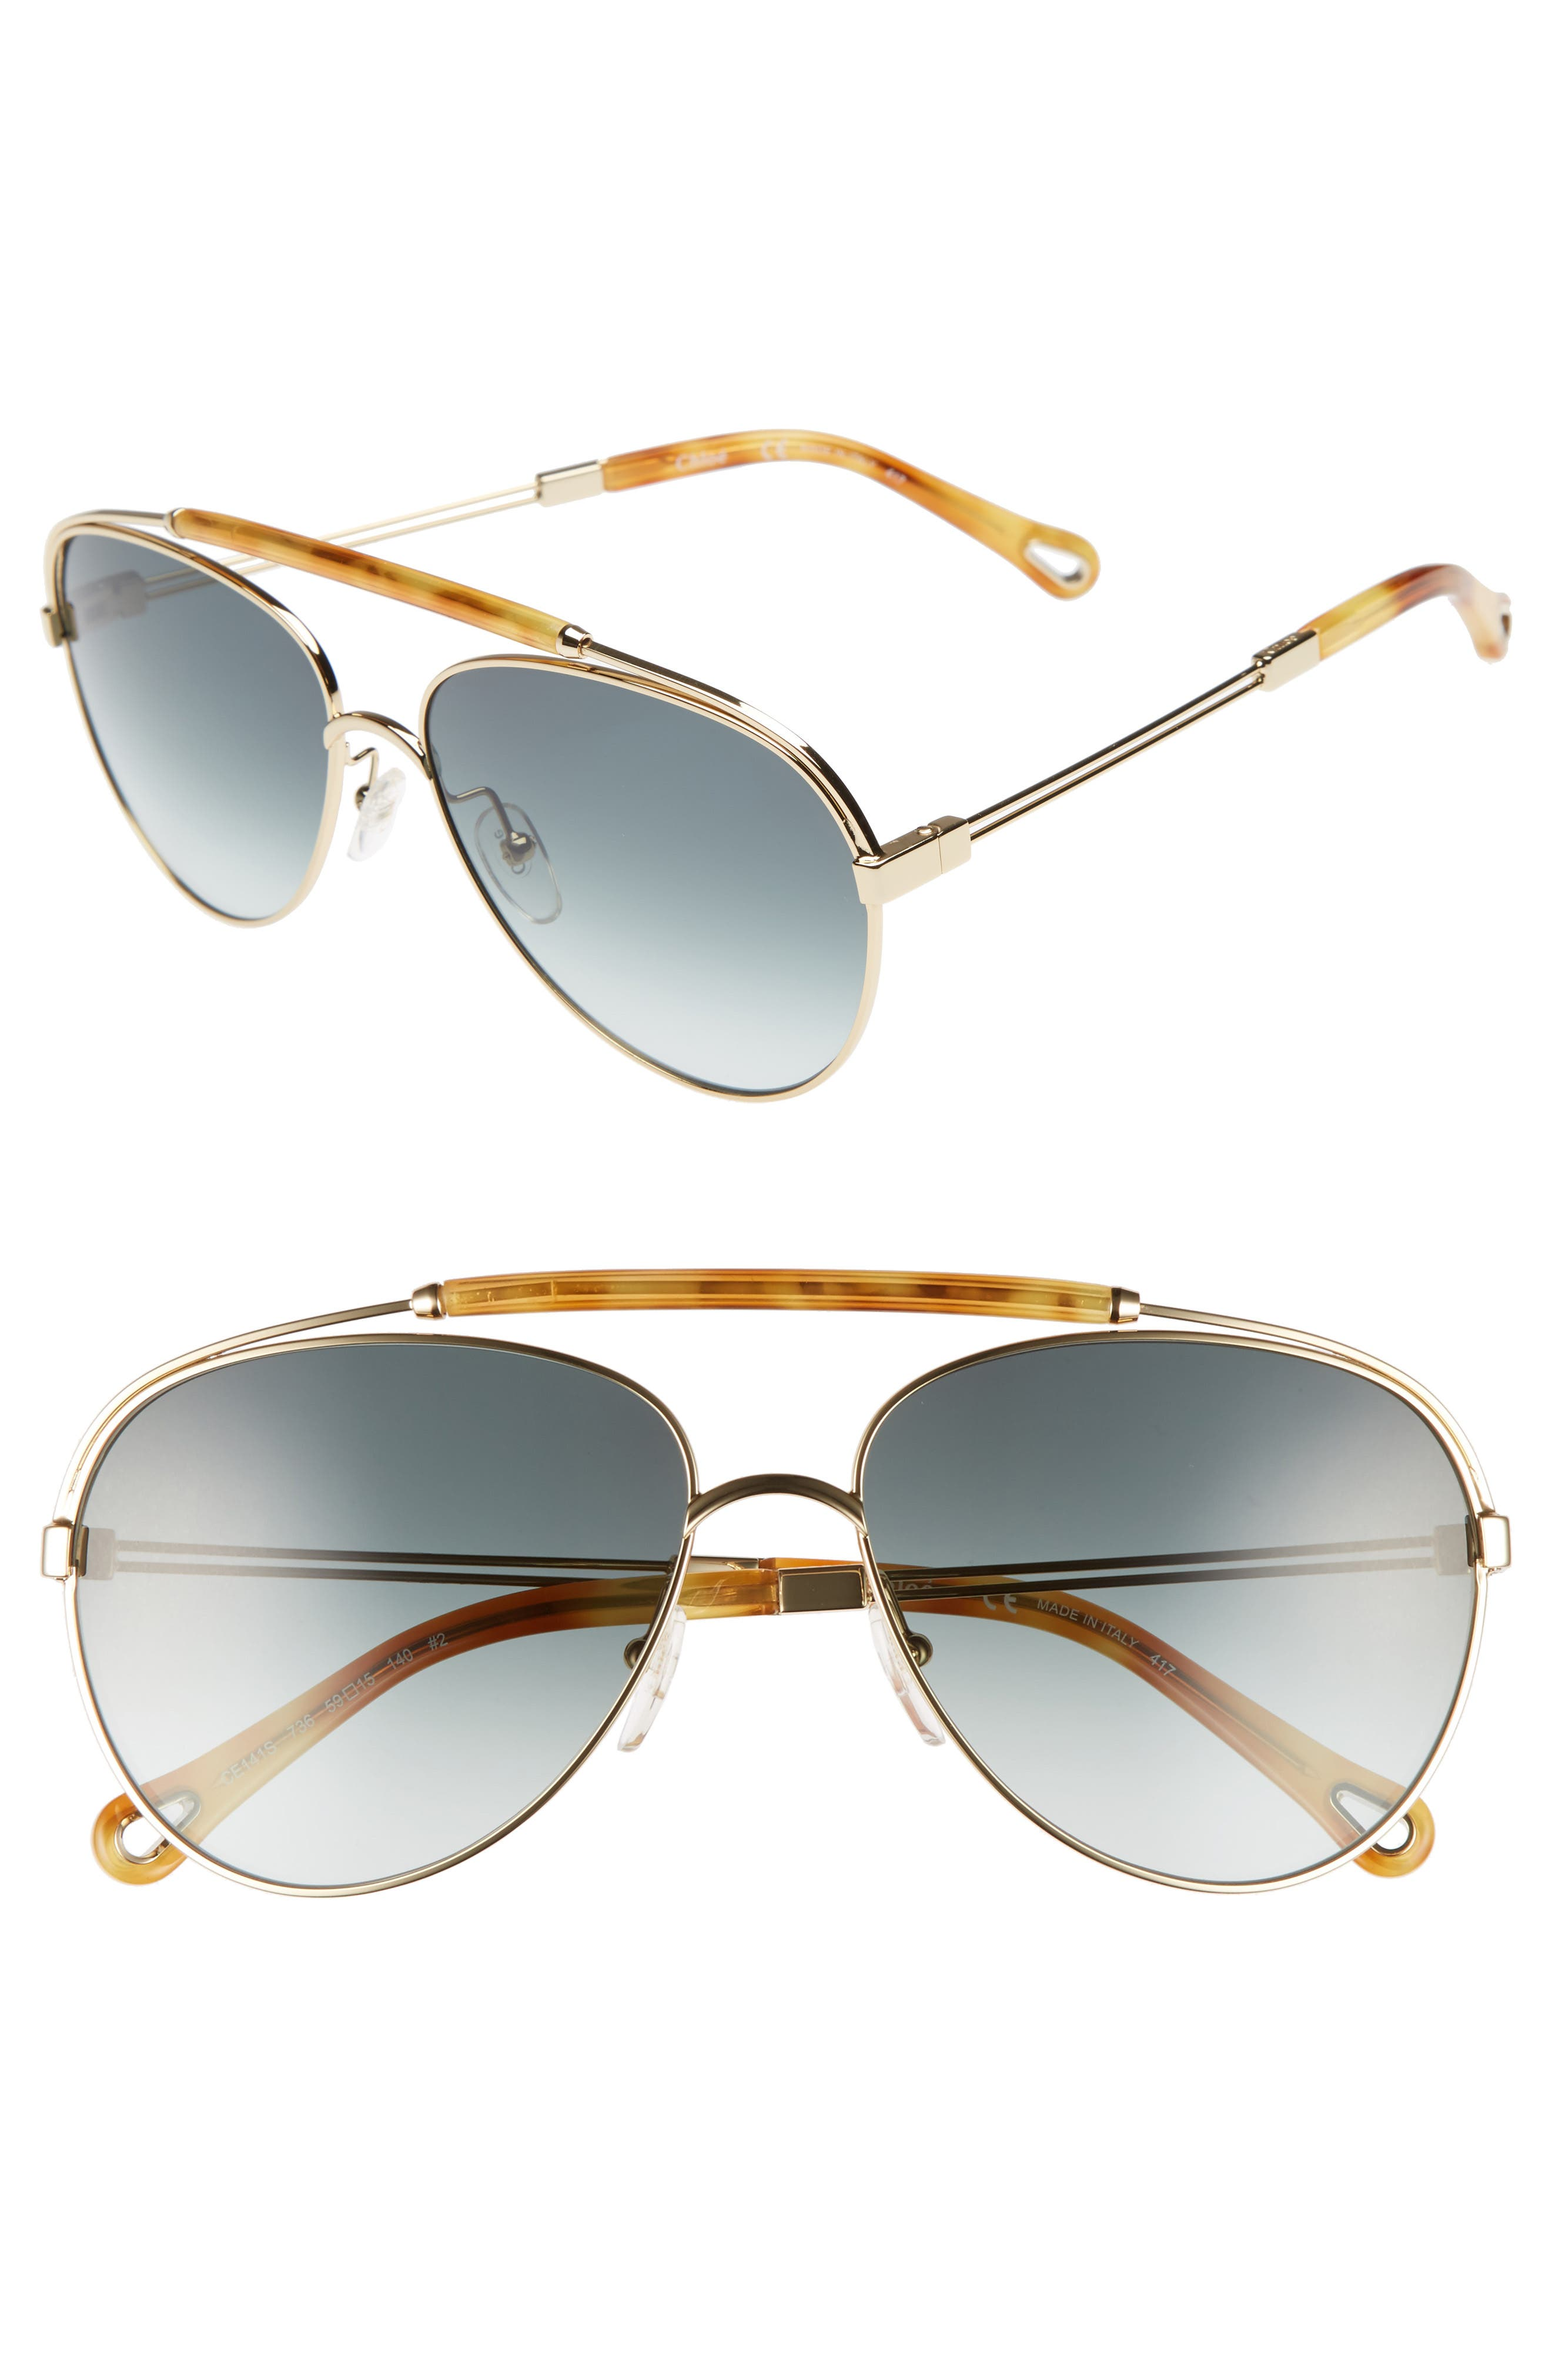 Jackie 59mm Aviator Sunglasses,                         Main,                         color, Gold/ Blonde Havana